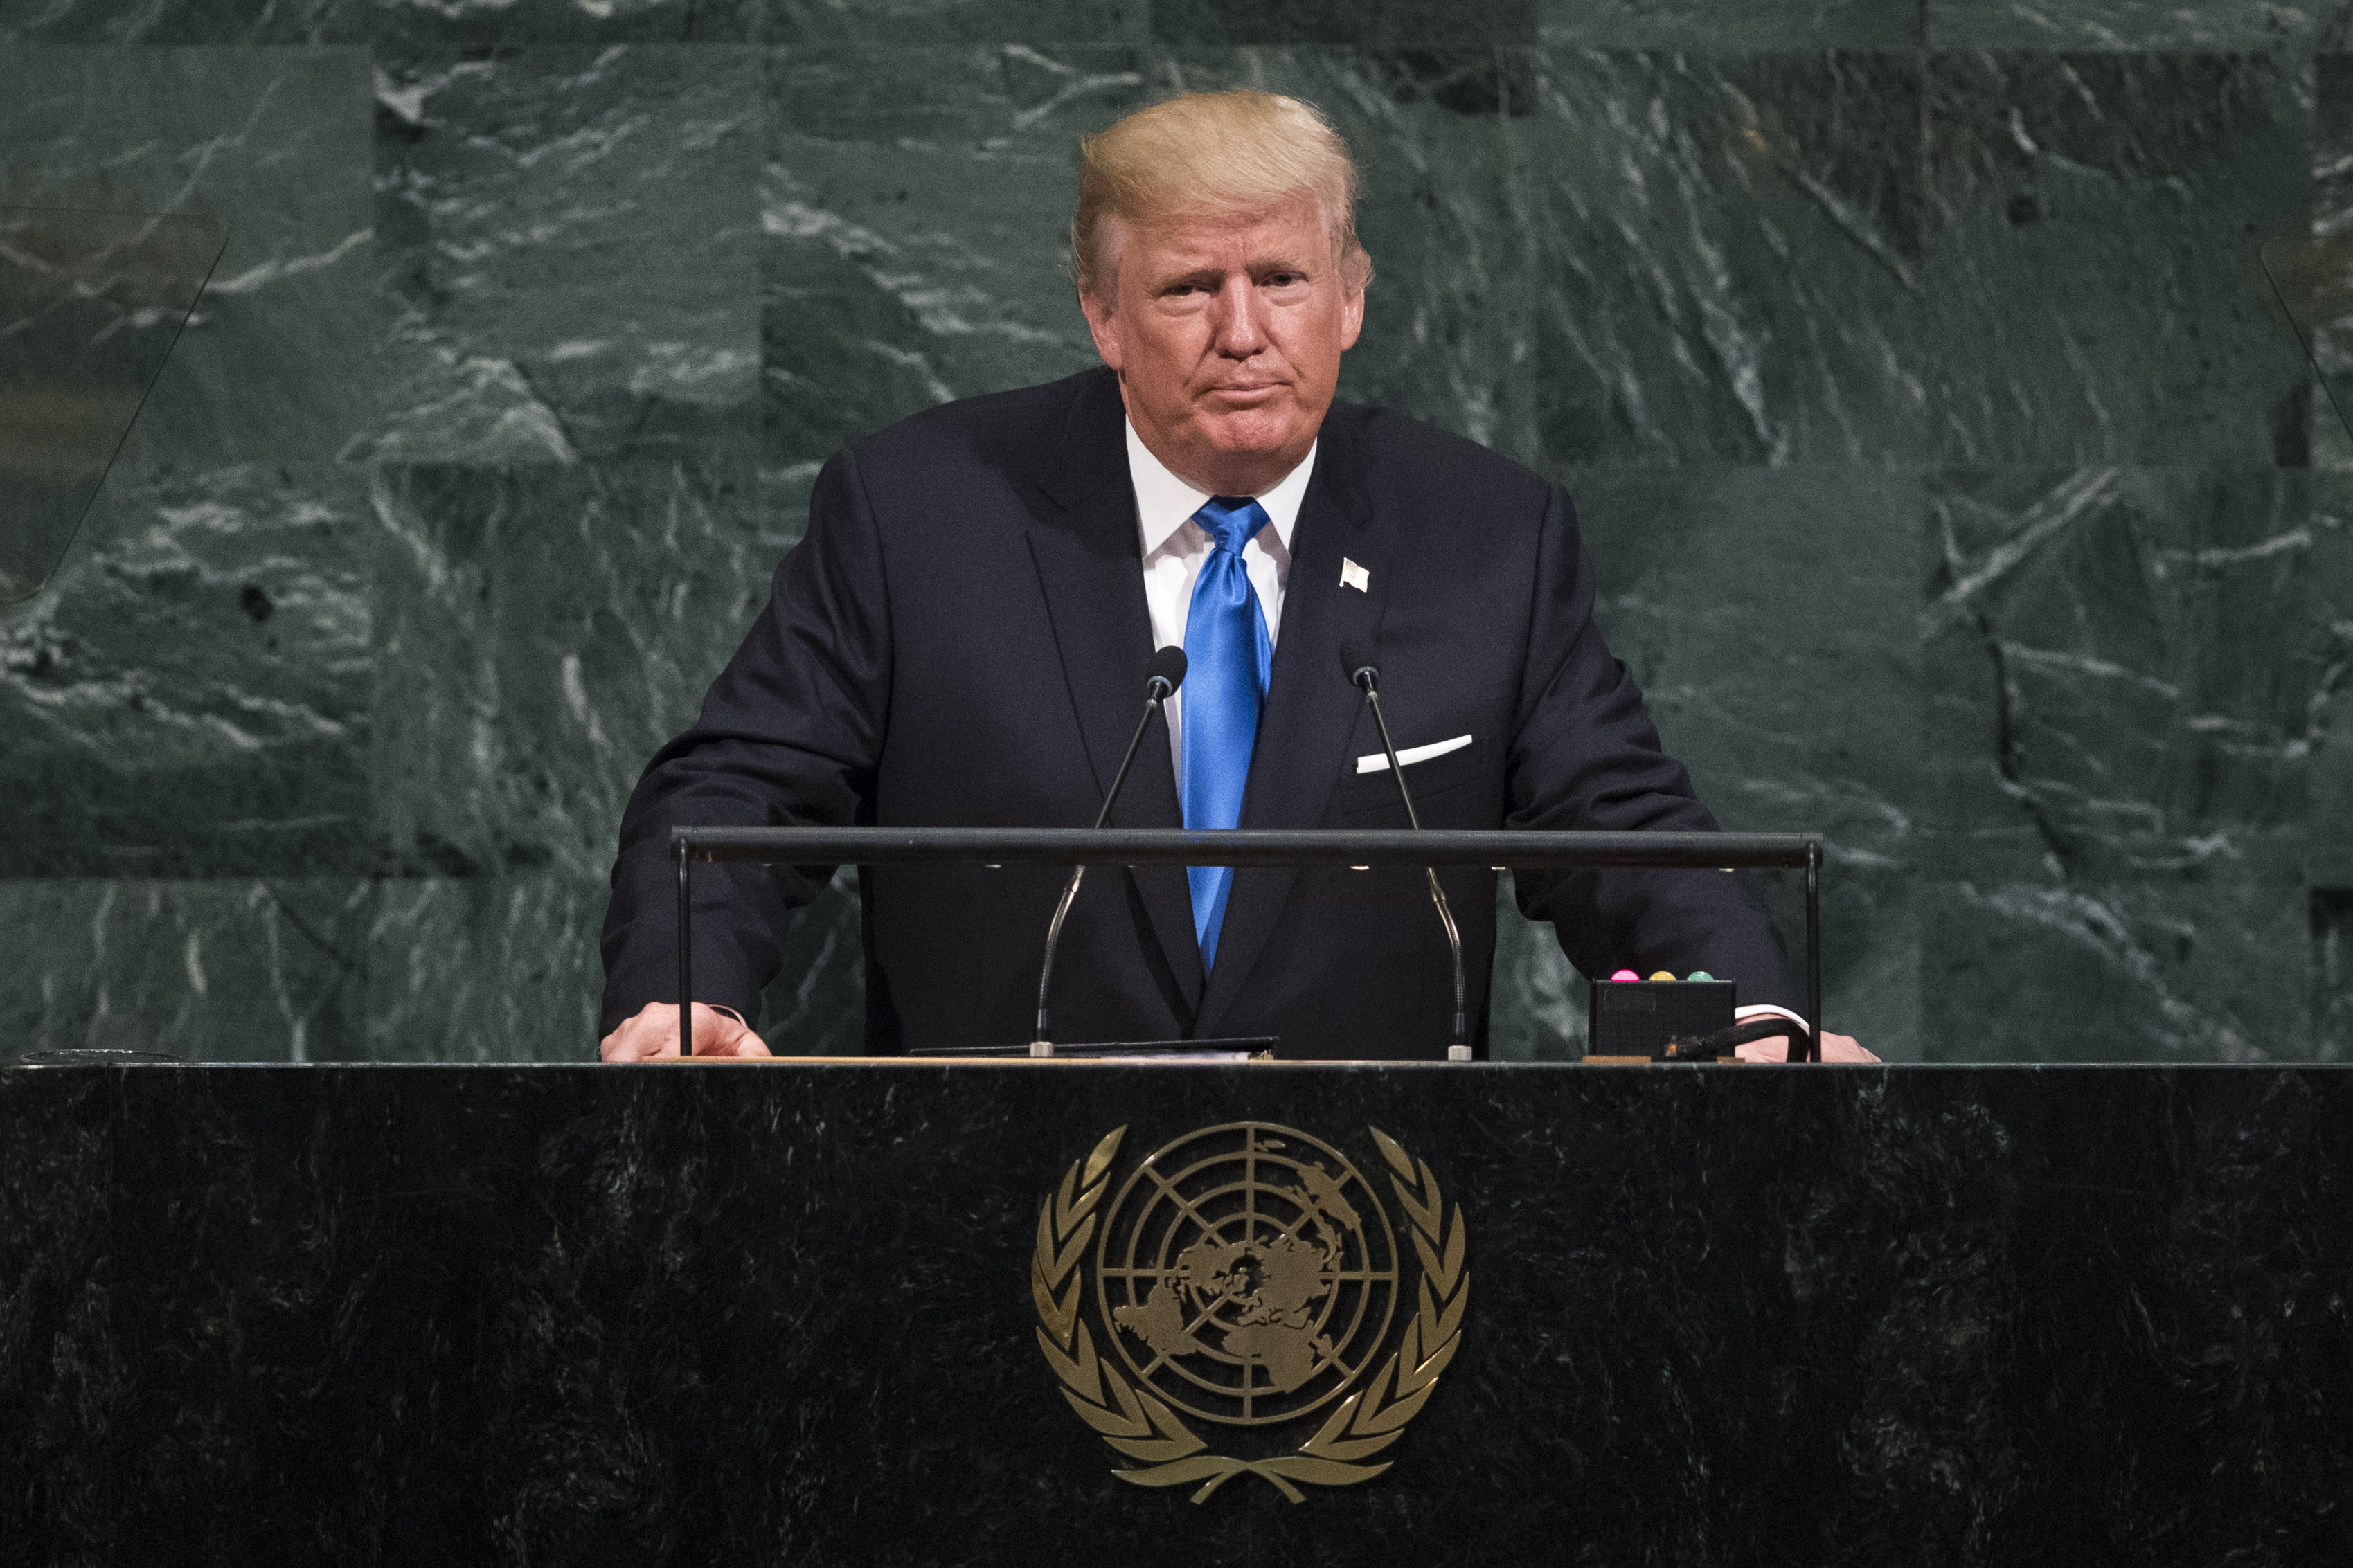 Trump comes to leverage the UN, not to bury it | Monday Briefing